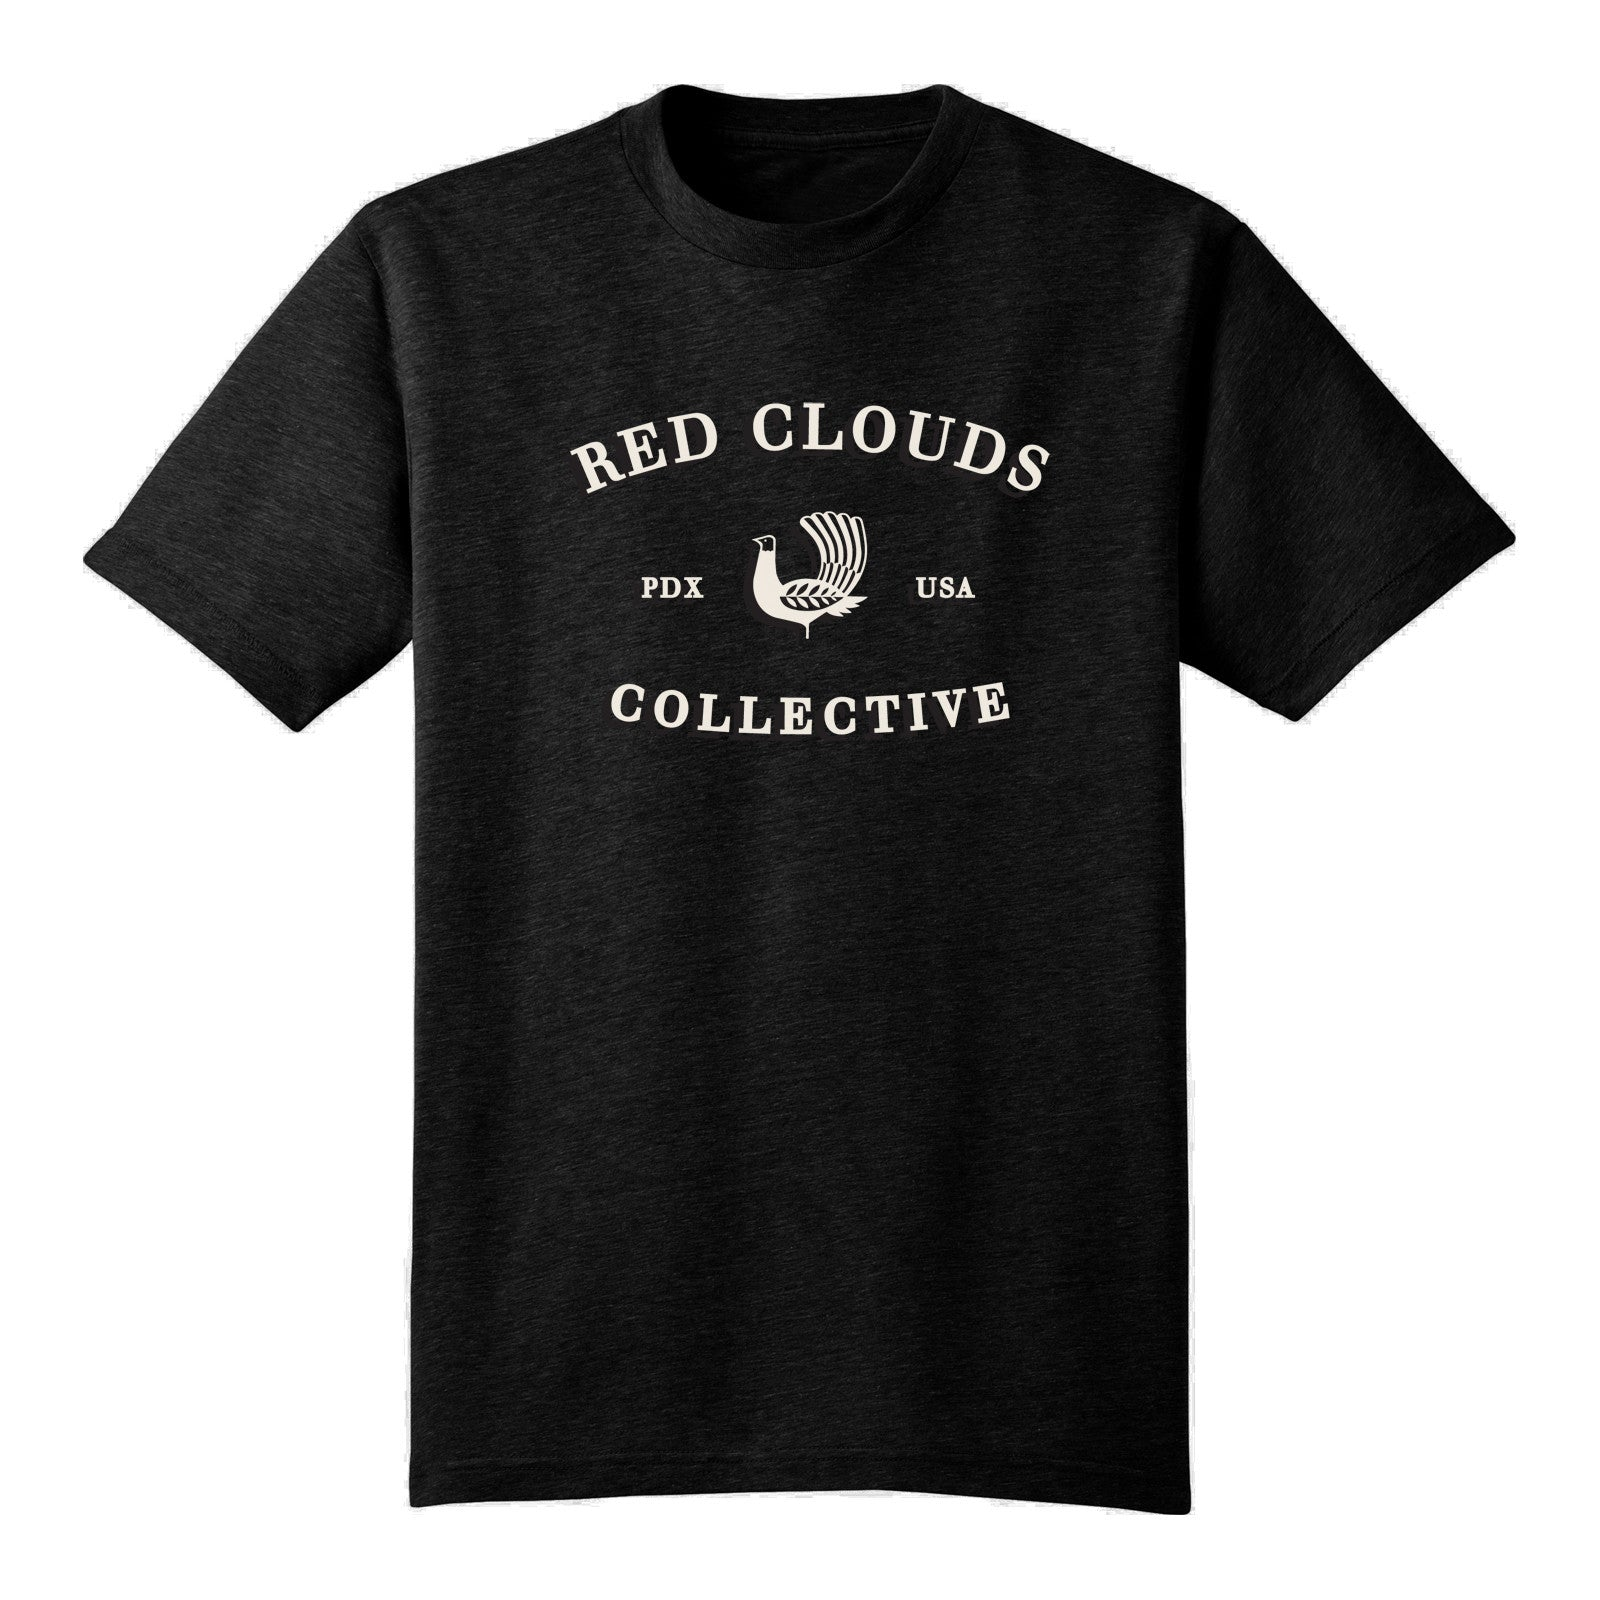 red clouds t-shirt, usa made shirt, t-shirt made in usa, black shirt, black tee, black tshirt, made in usa tee